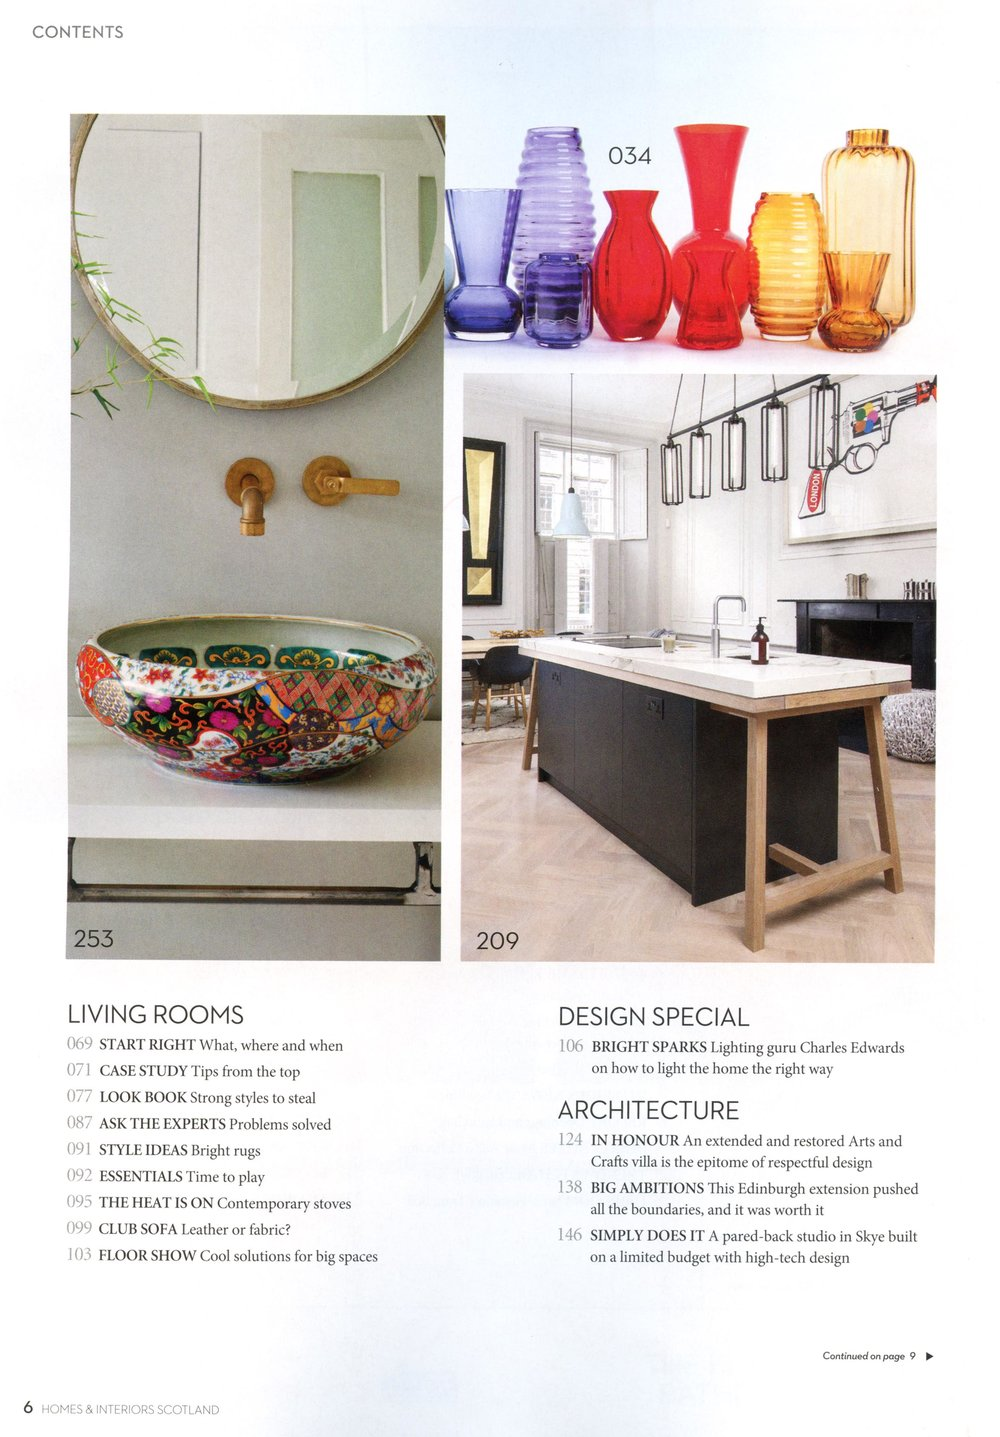 Good Homes - 10 ways to Add Space Light Value - September 2016 LBC.jpg